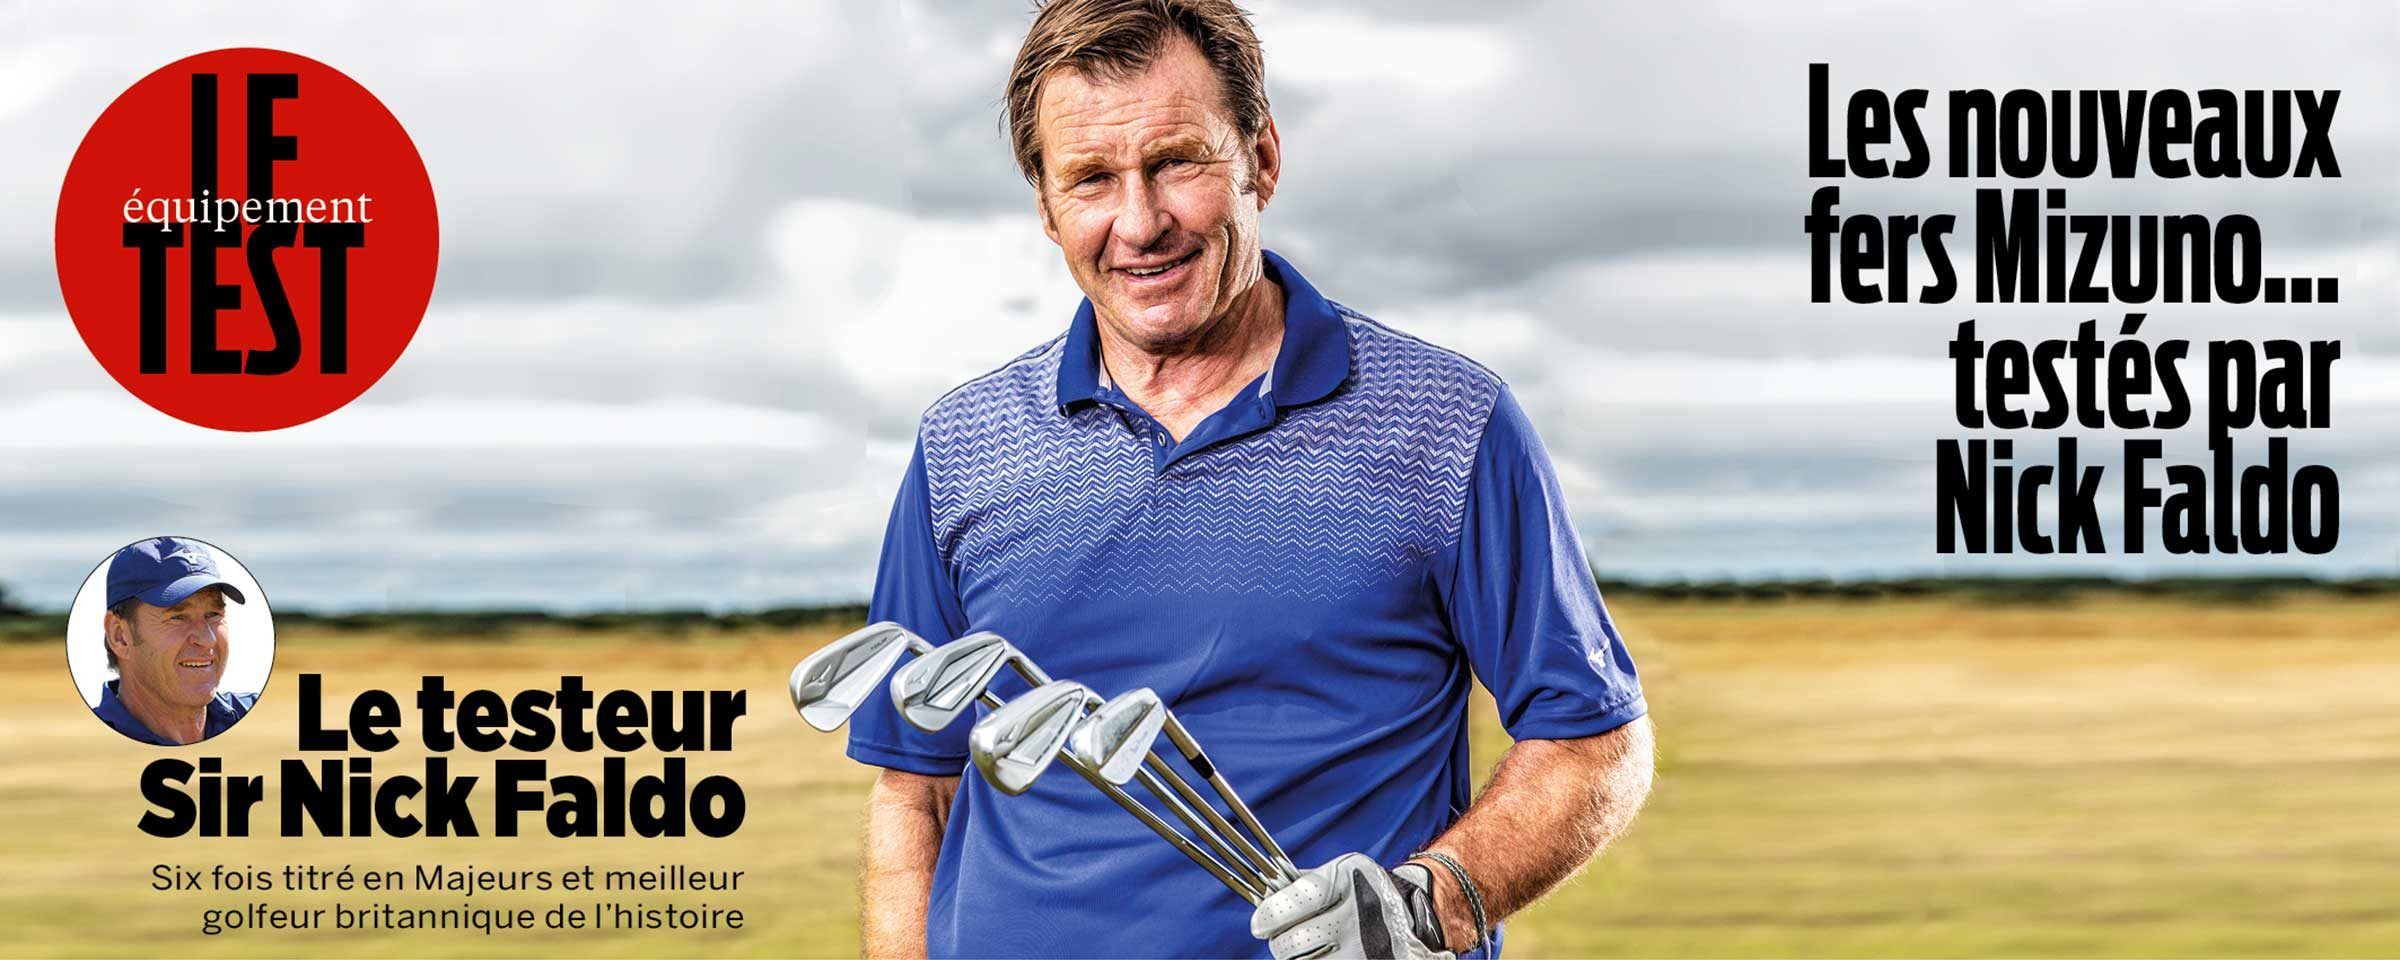 Le testeur Sir Nick Faldo